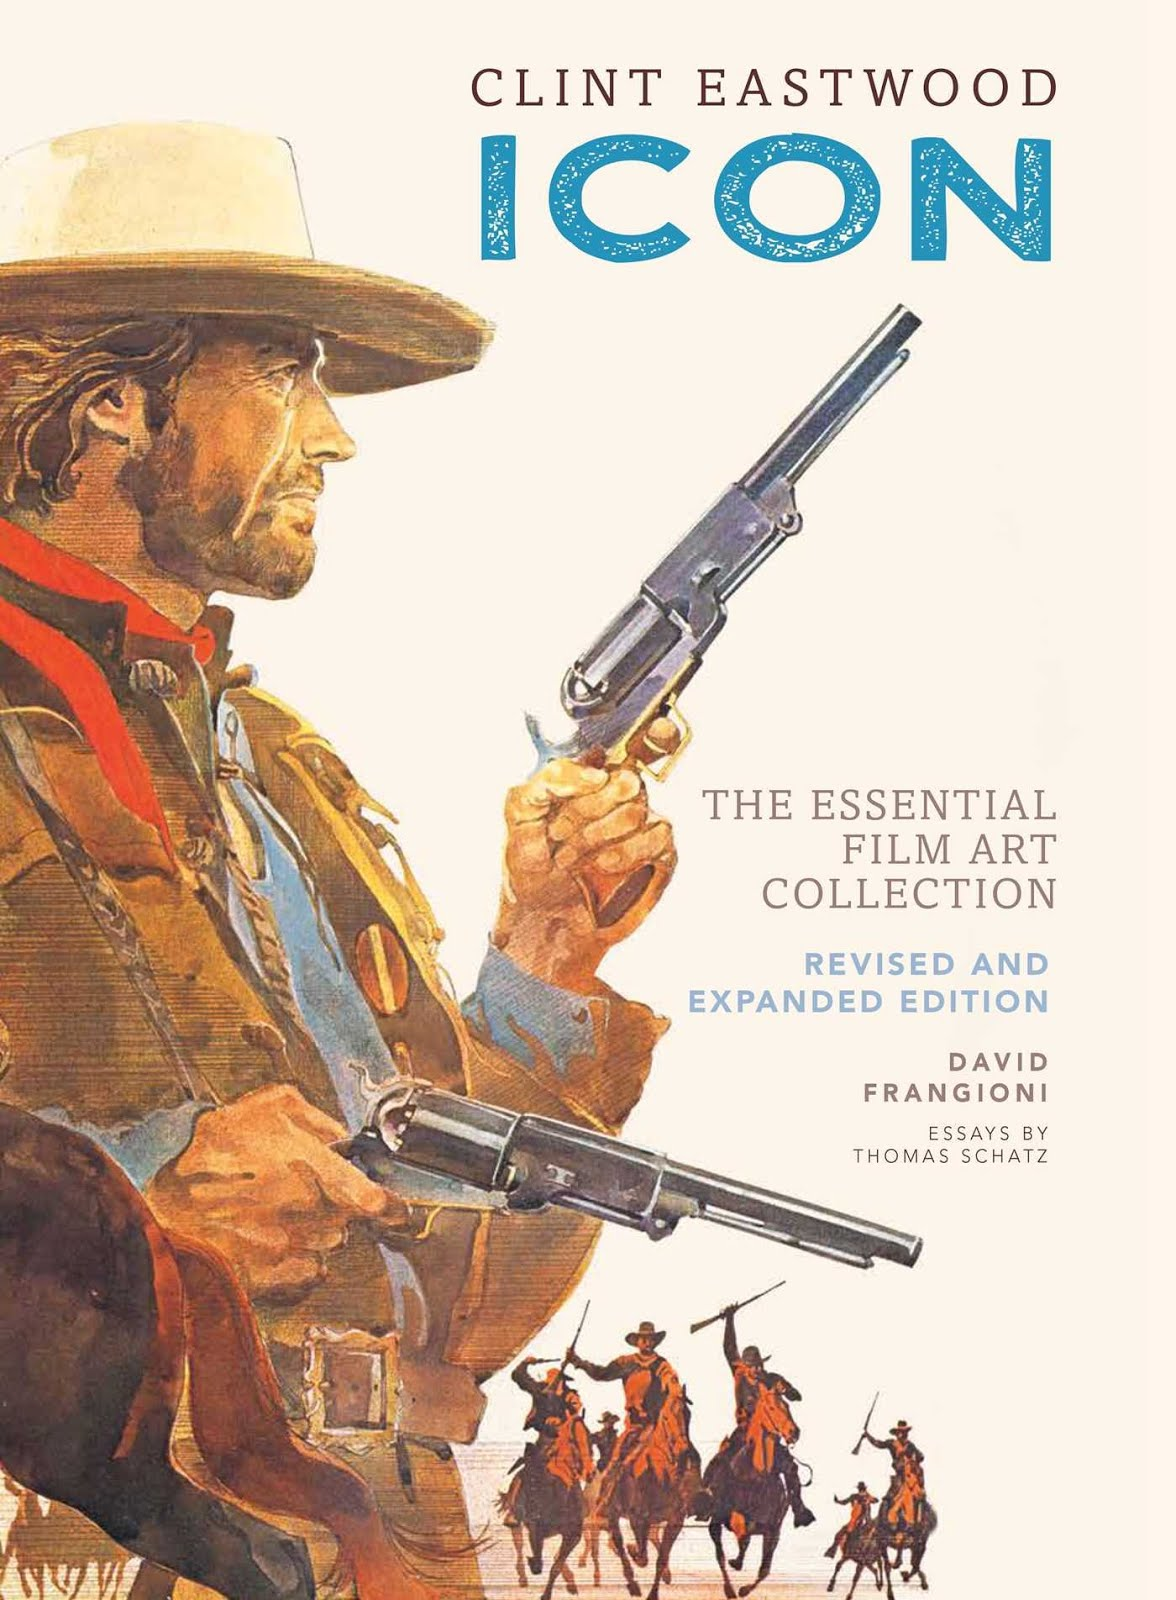 David Frangioni's NEW updated book Clint Eastwood ICON